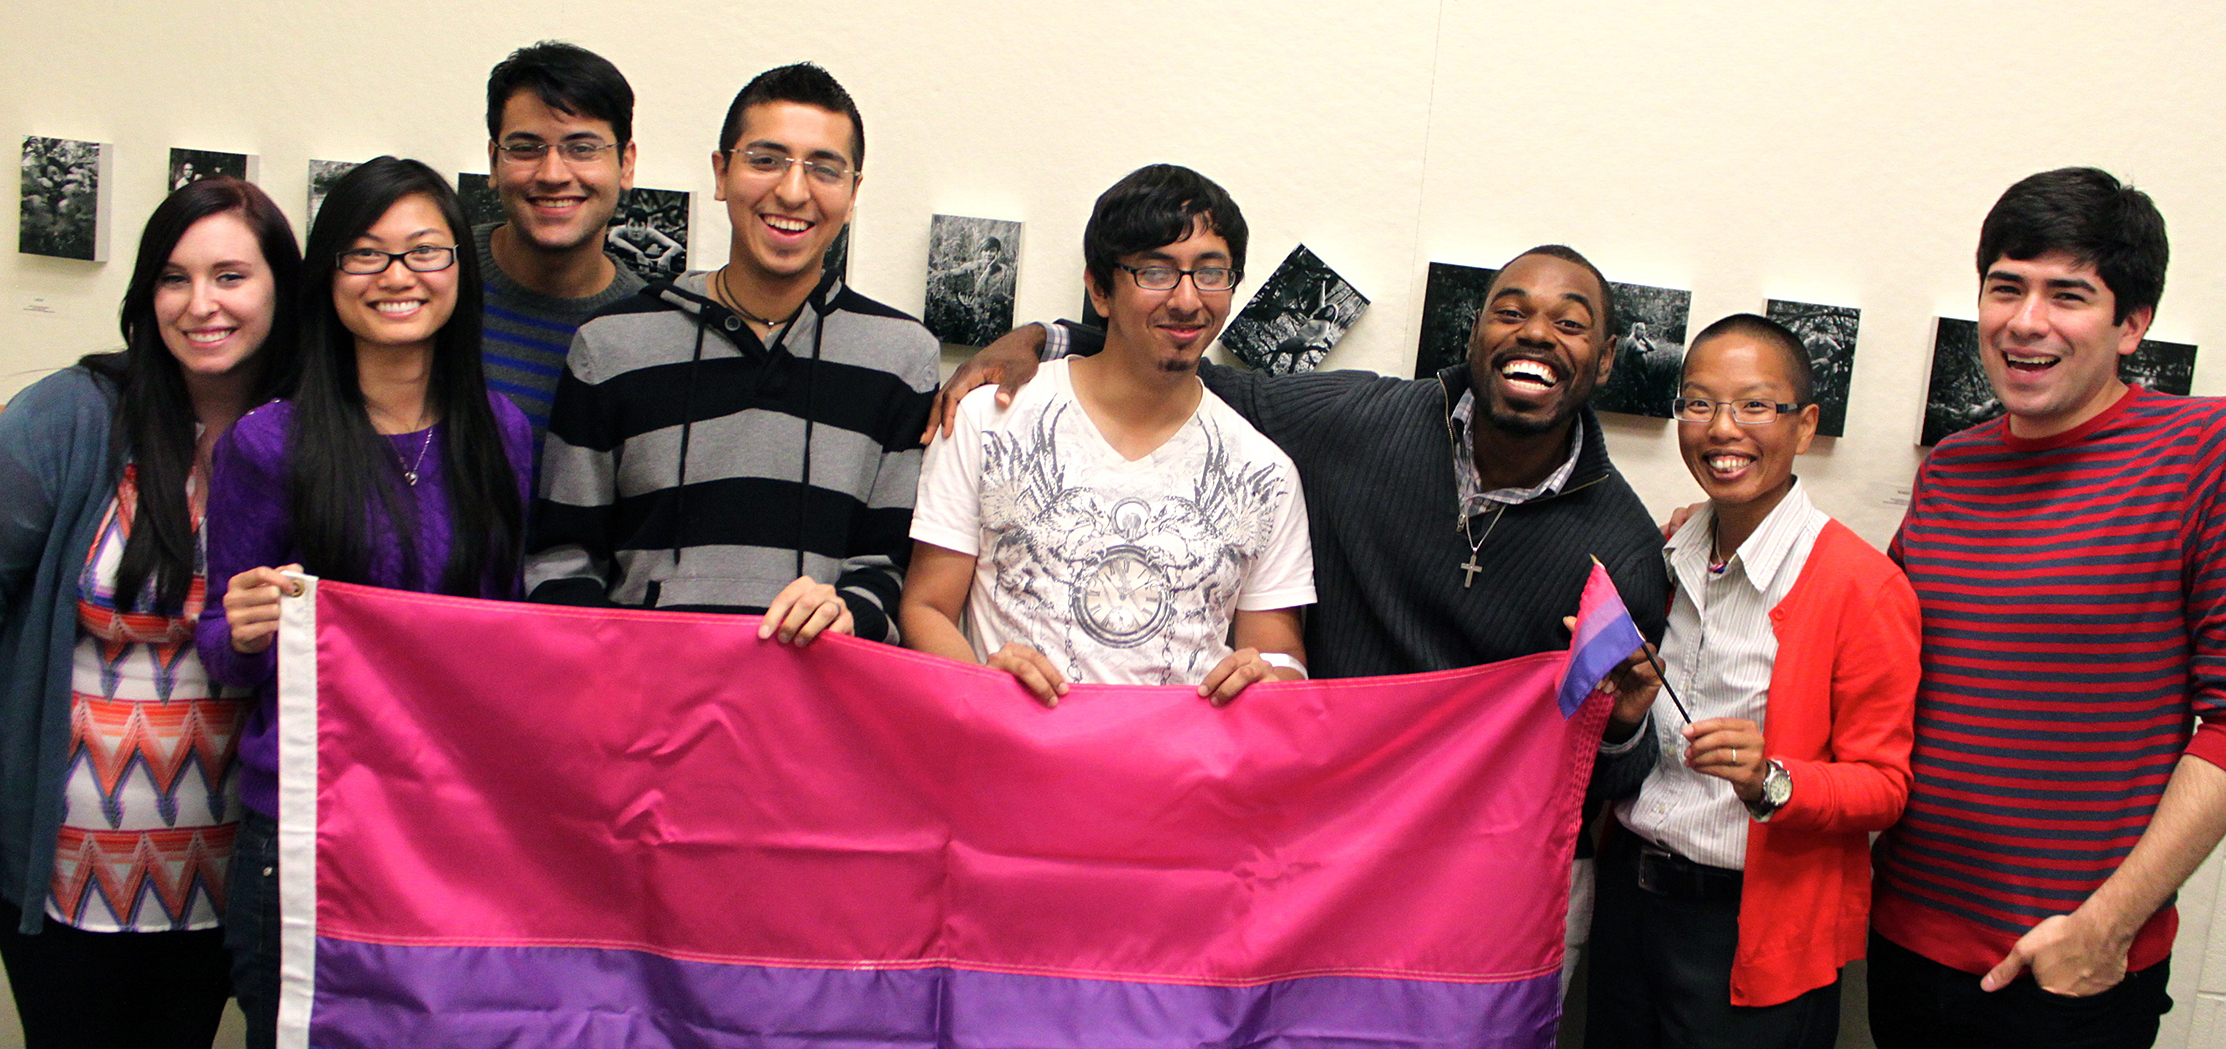 UIC Gender and Sexuality Center staff, students